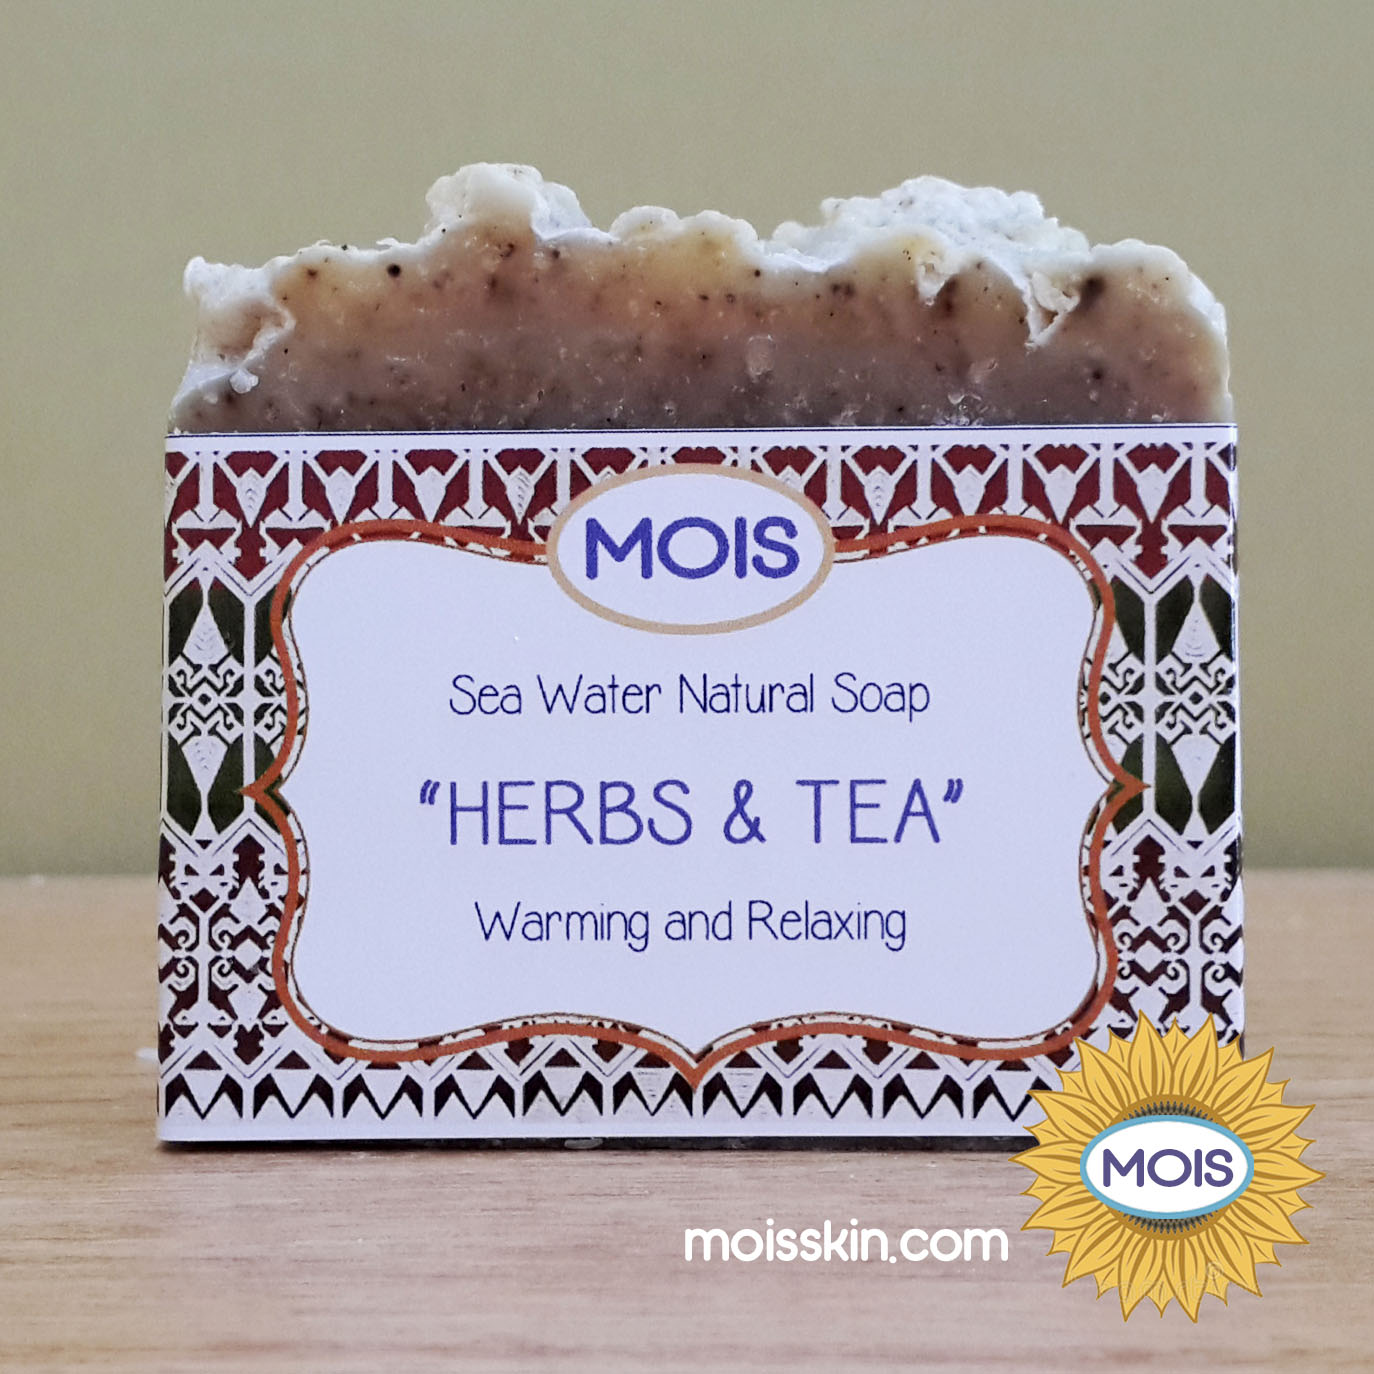 Made from herbs and tea, the scent of the soap is unique and calming. It cleans very well as well.